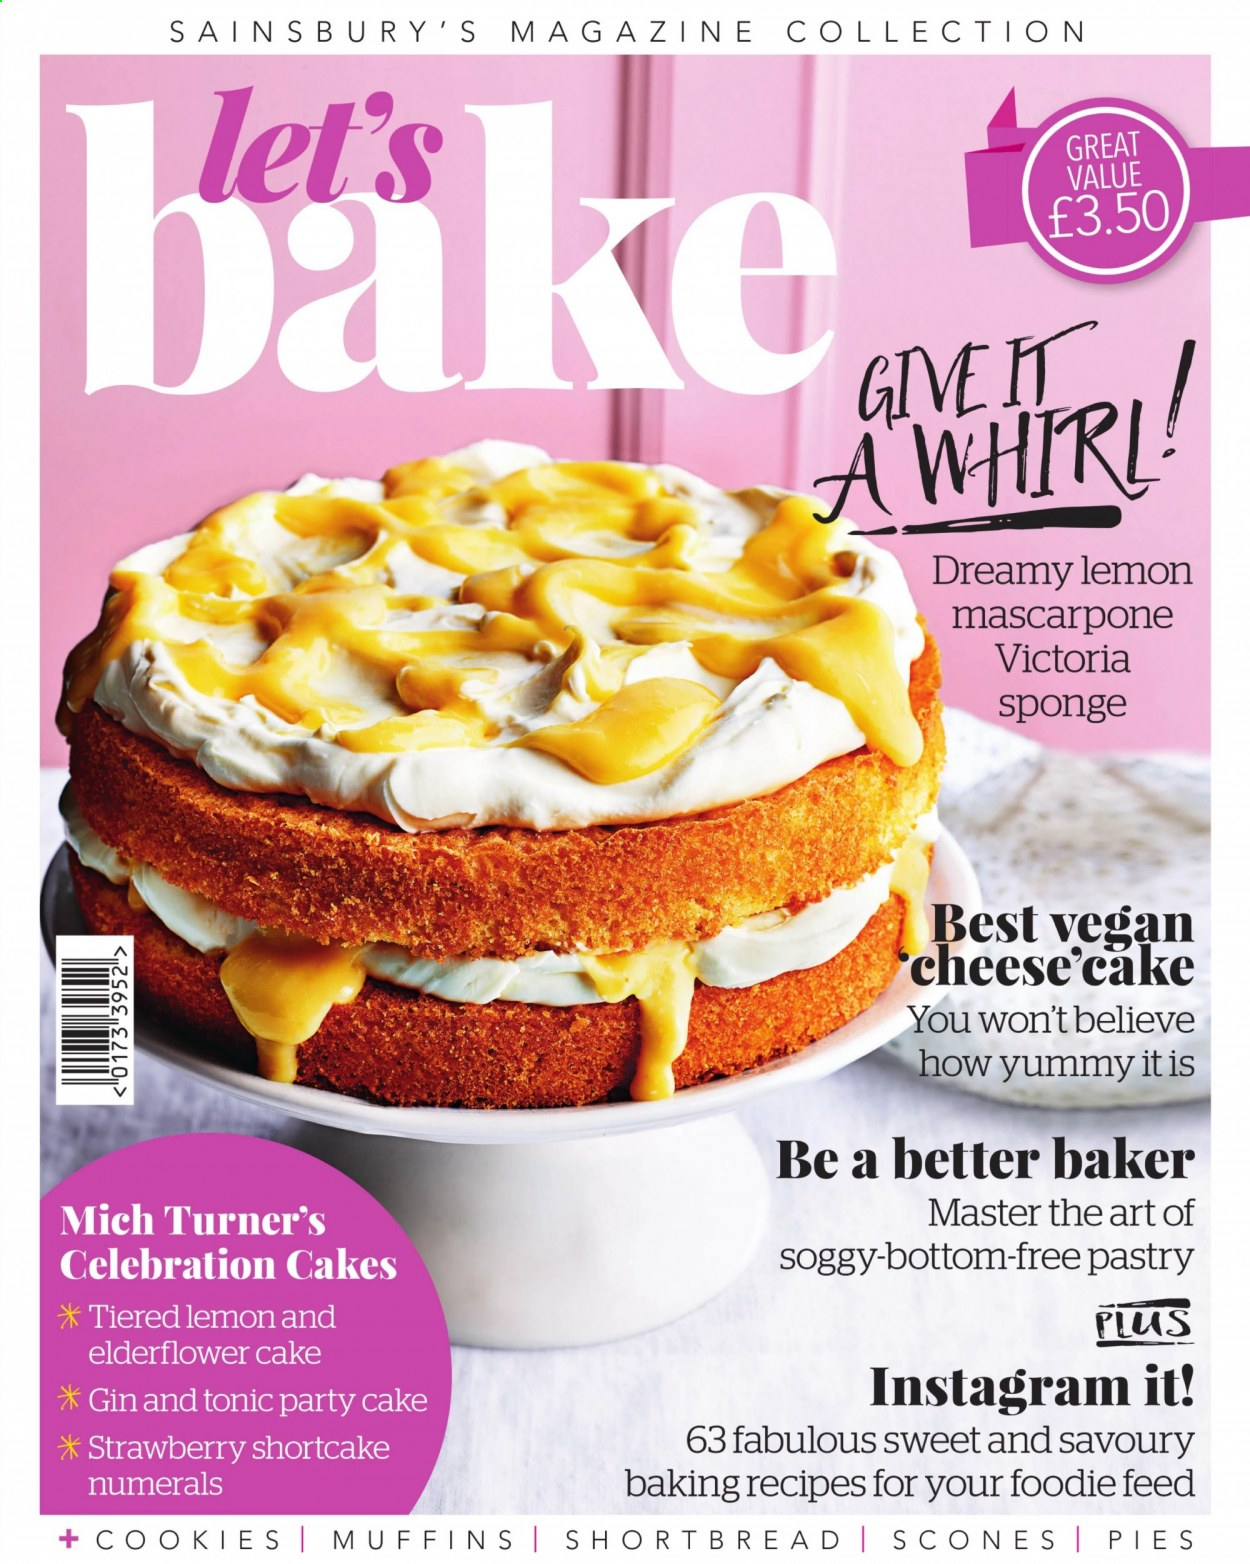 Sainsbury's offer  - Sales products - bottom, gin, mascarpone, muffins, turner, vegan, cheese, cake, sponge, sweet, strawberry. Page 1.